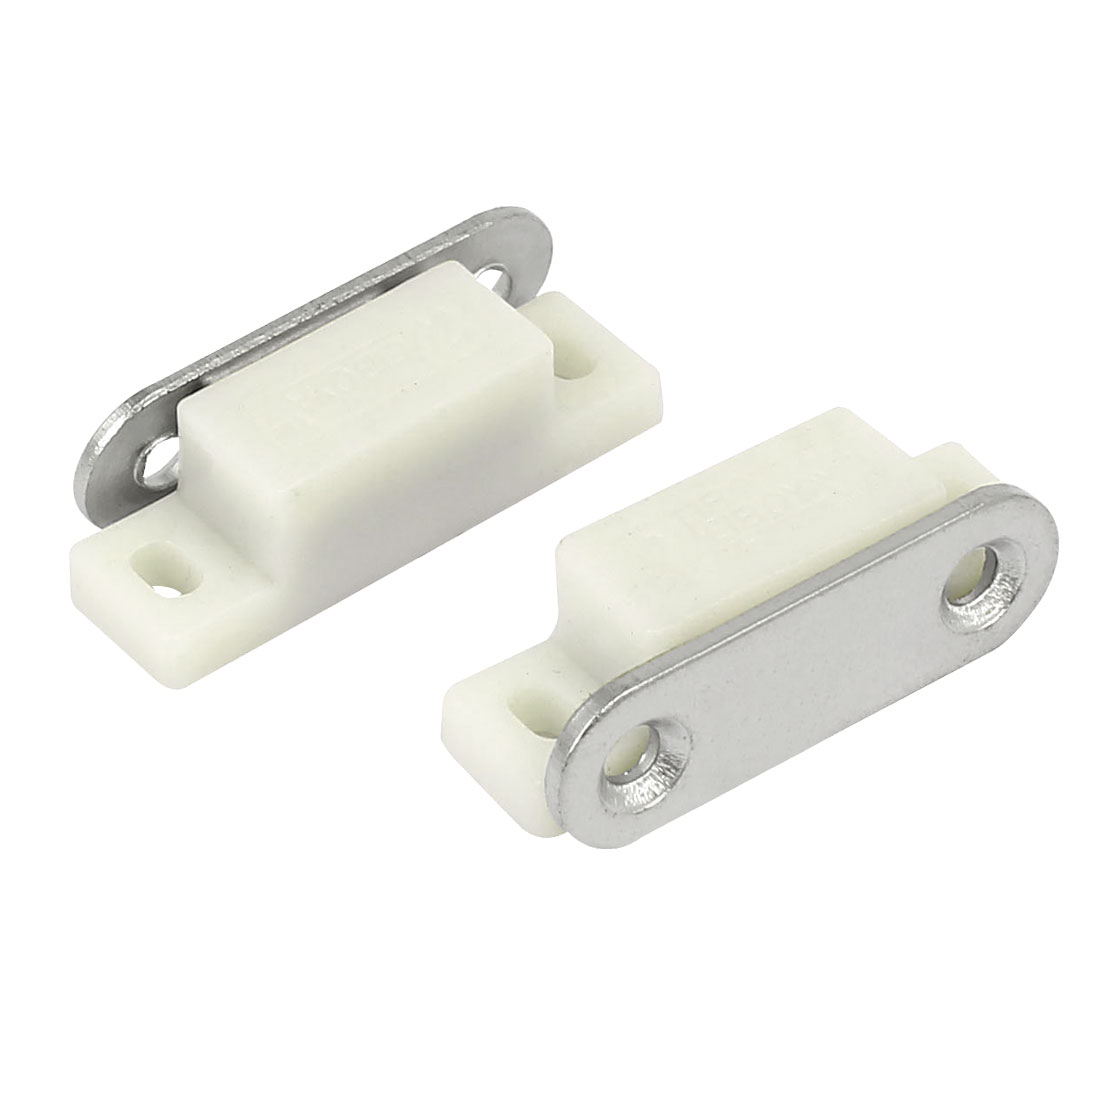 Drawer Cabinet Cupboard Plastic Shell Magnetic Catch Latch White 2PCS